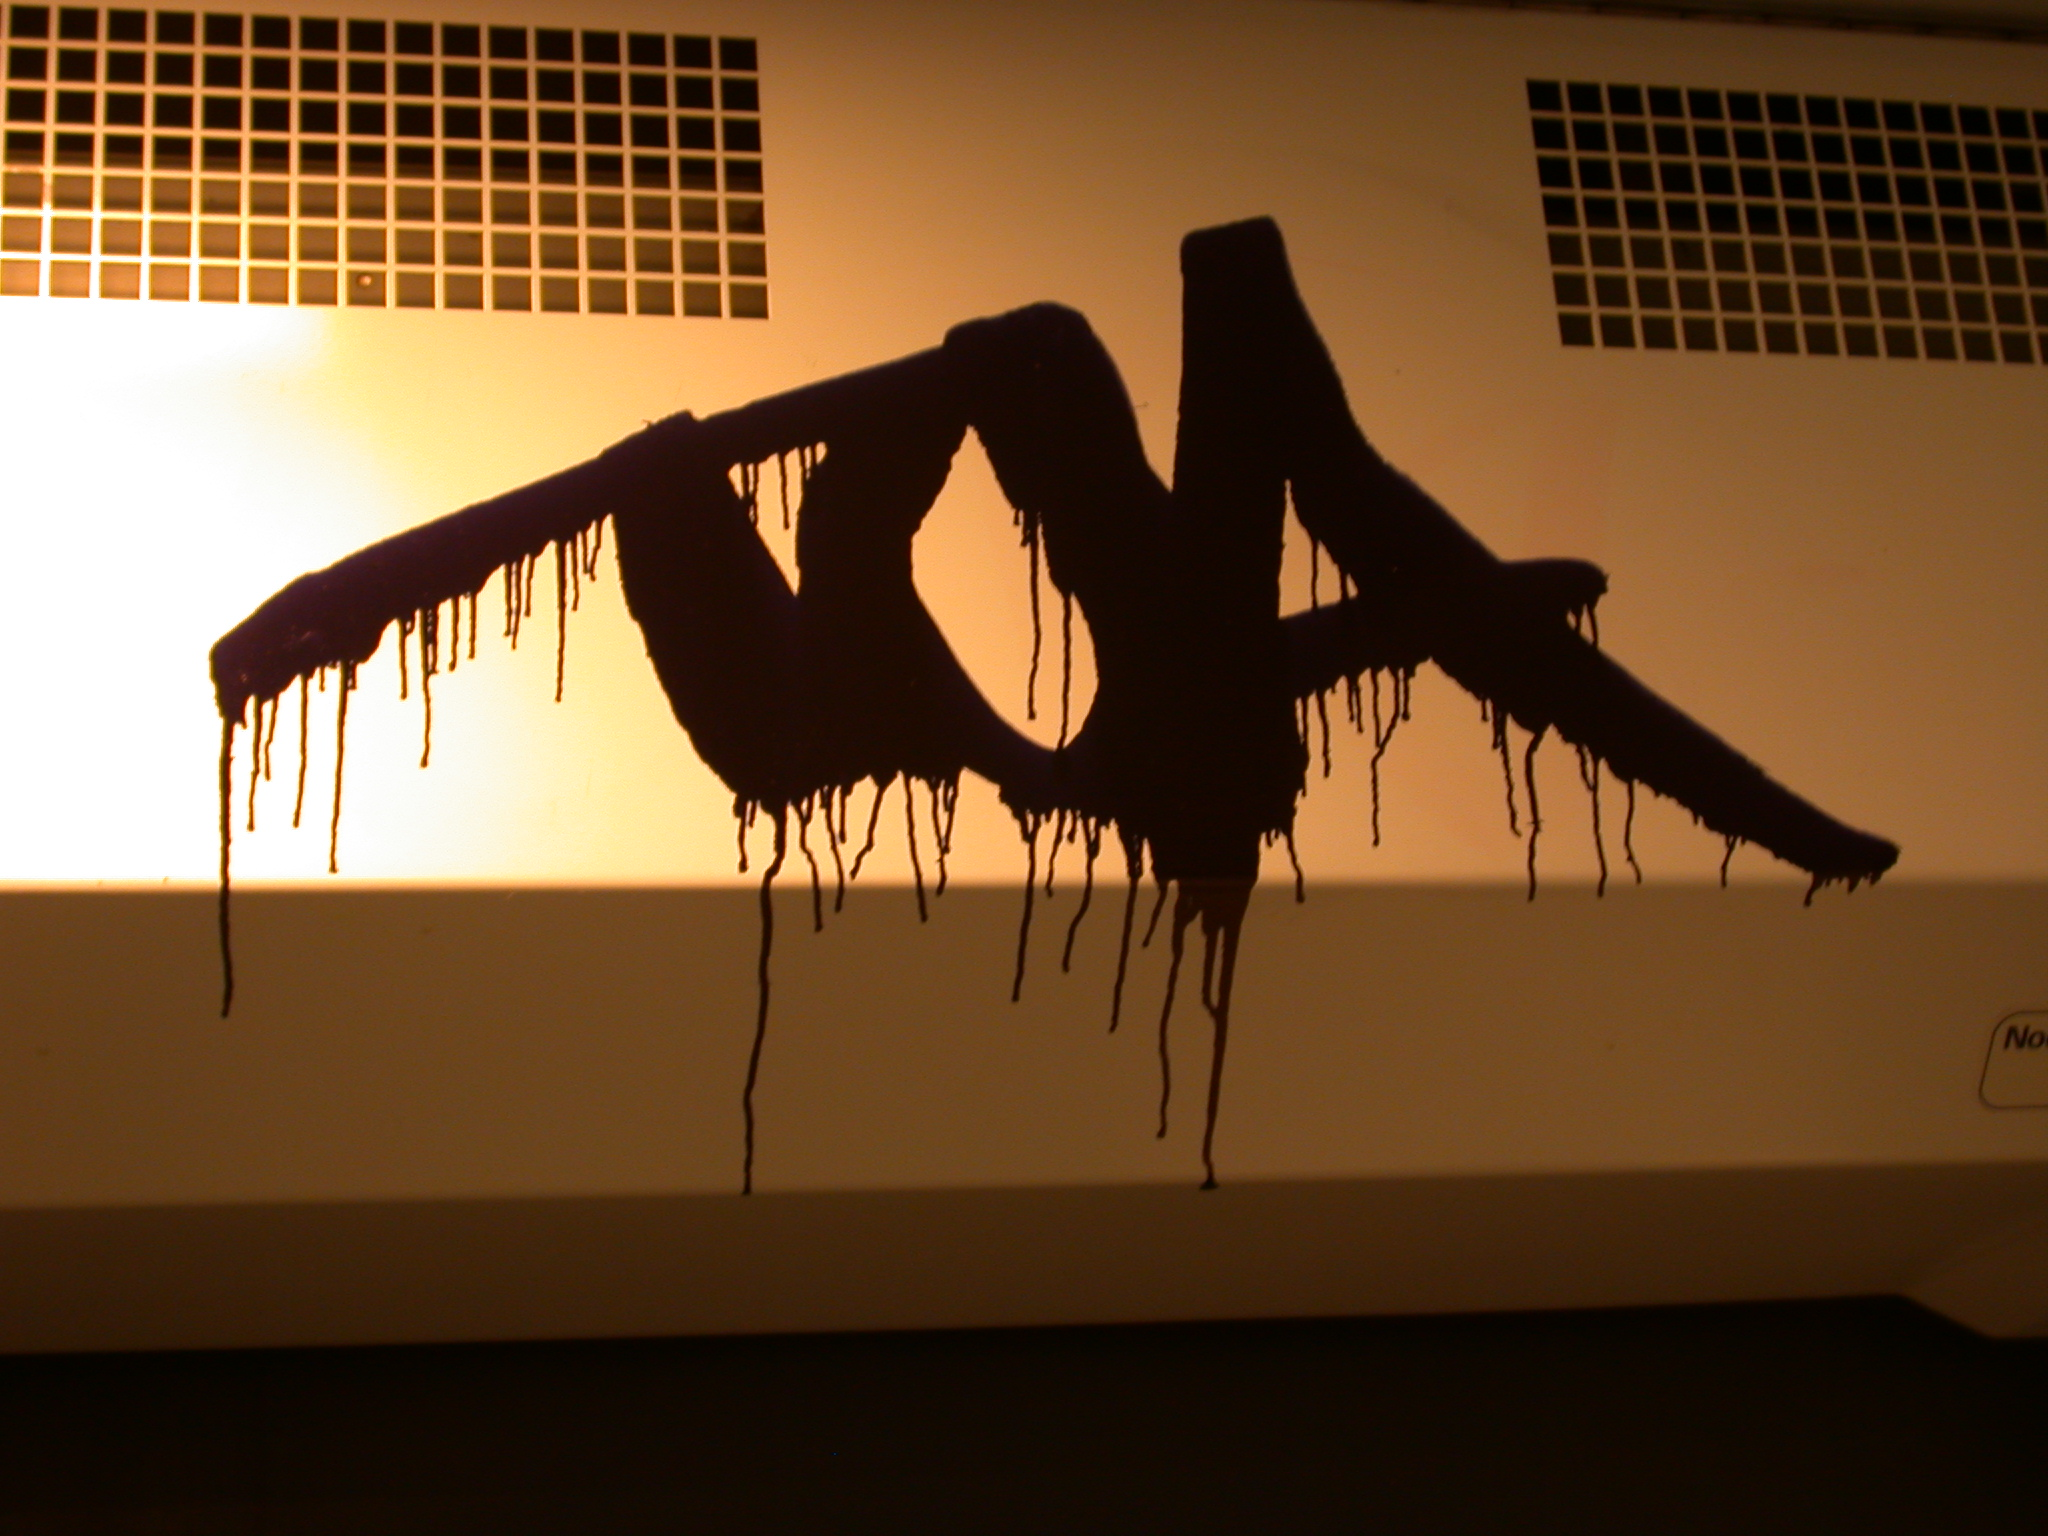 scripts graffitty toa t o a handwriting typography drip drips paint painted